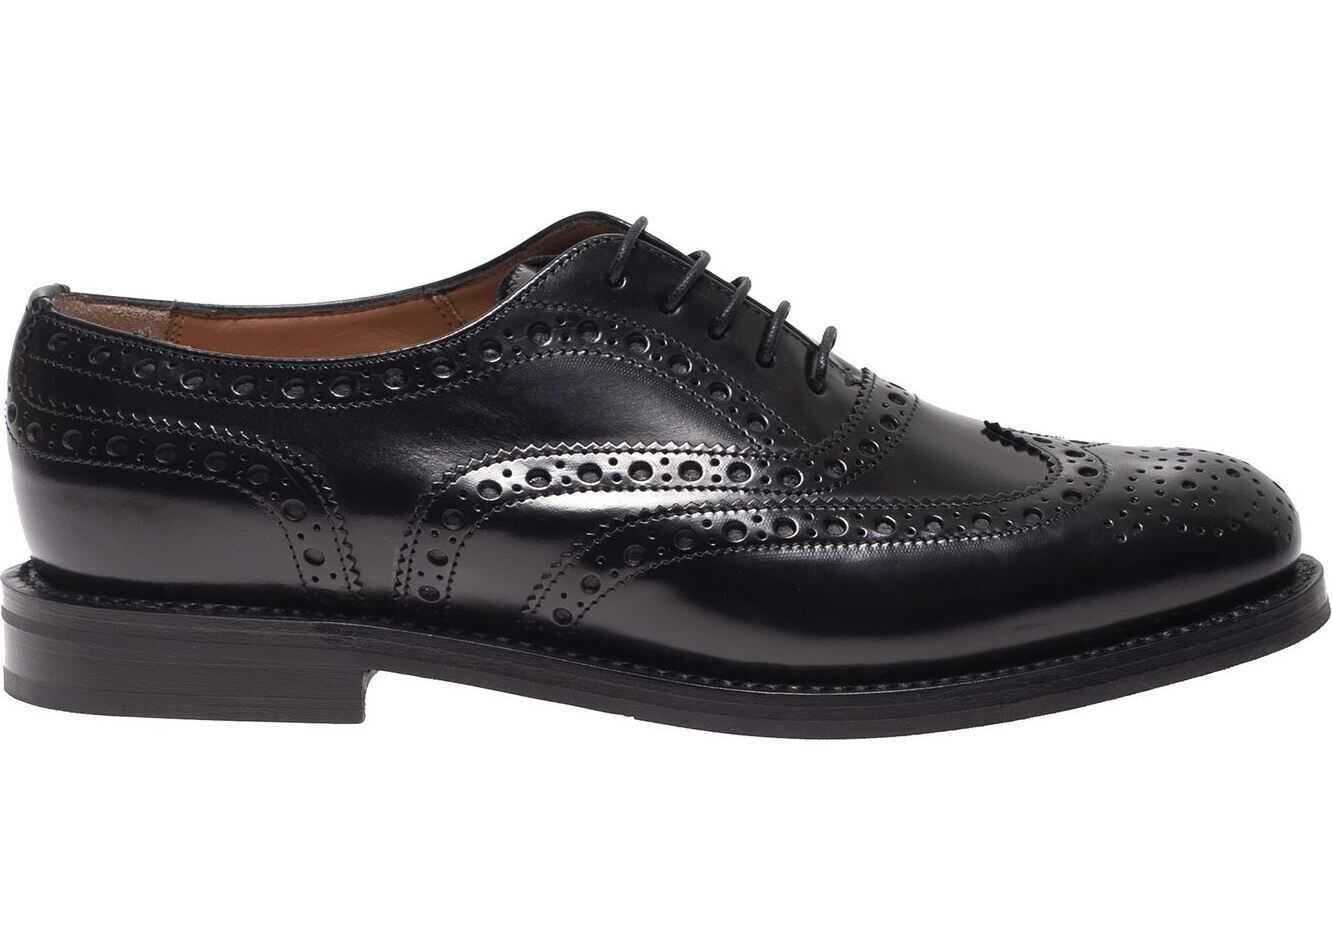 Burwood Wg Oxford Shoes In Black thumbnail